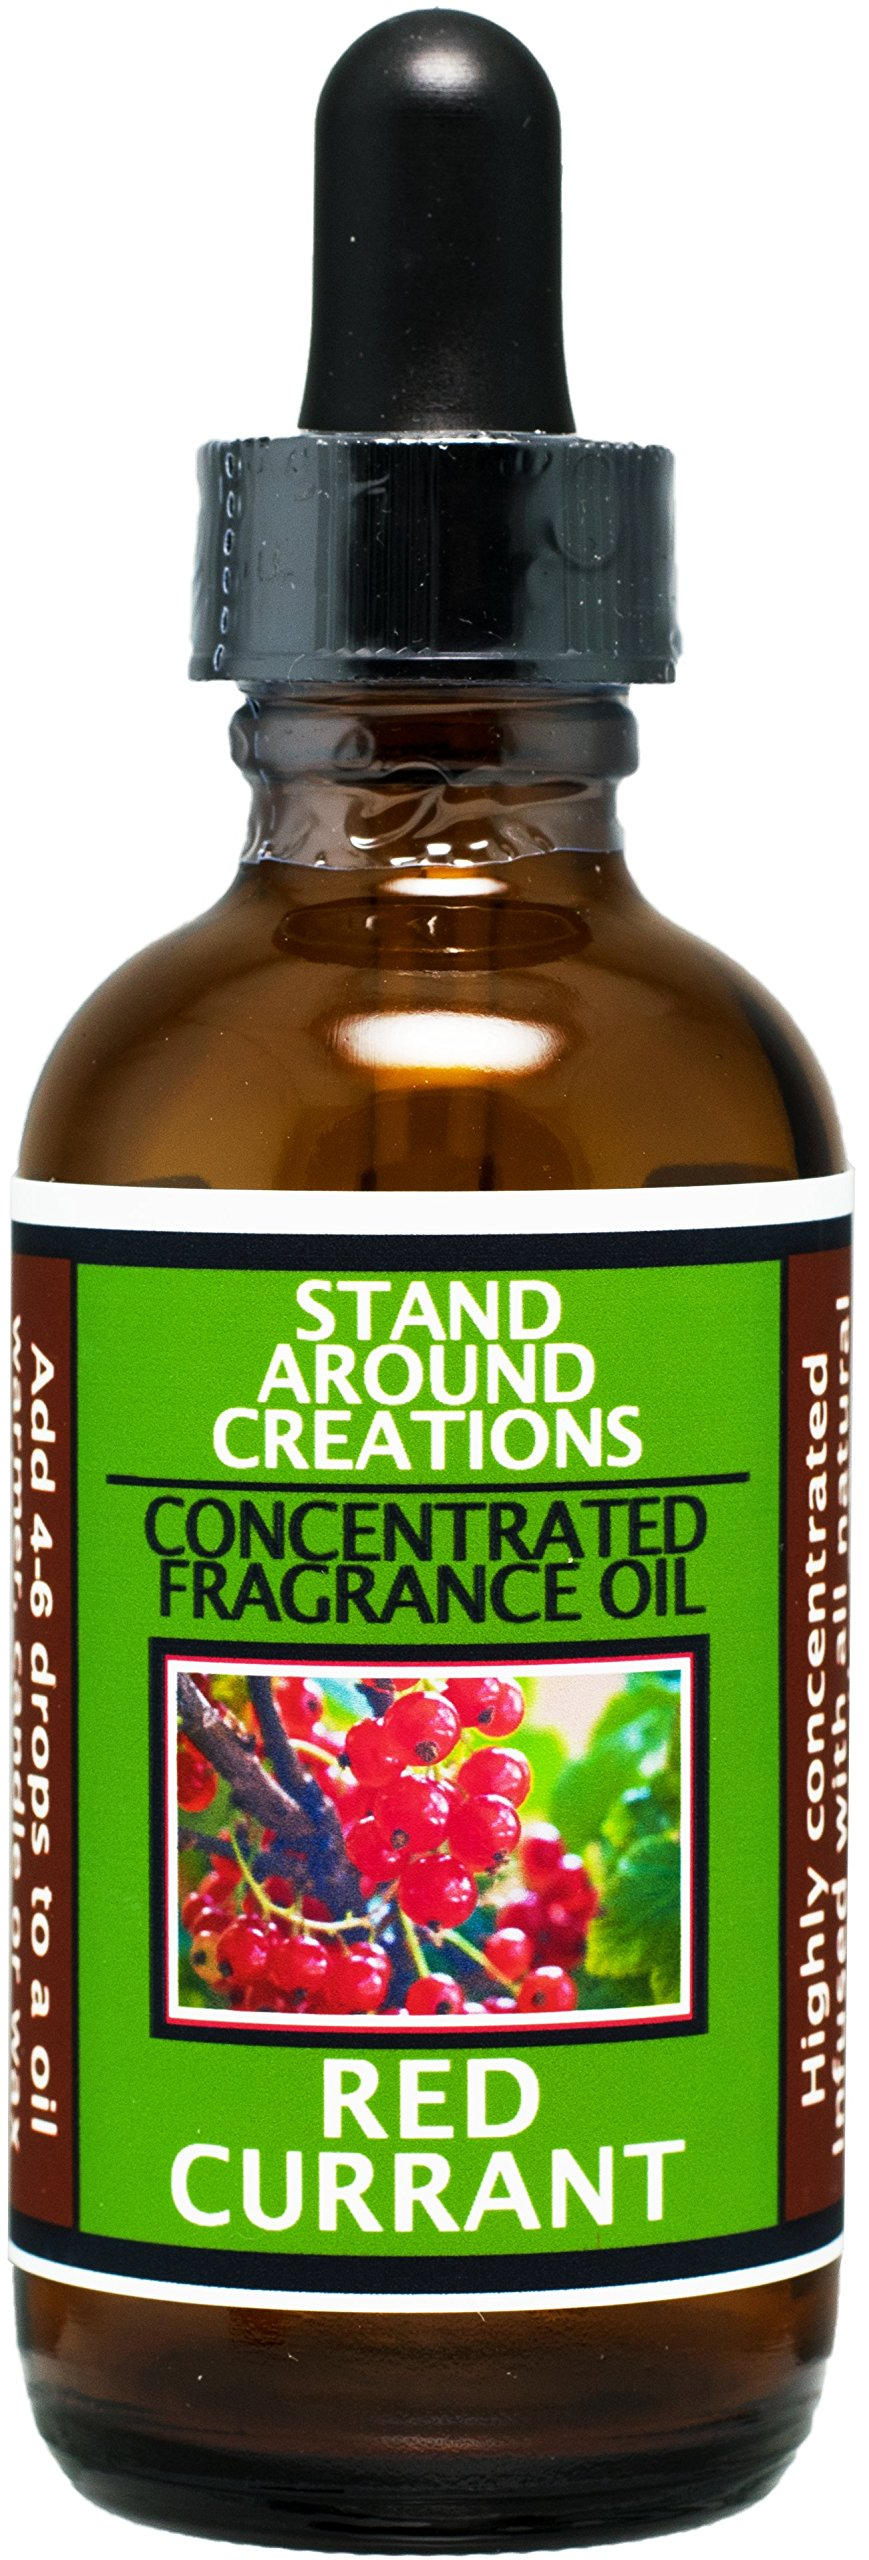 Concentrated Fragrance Oil - Red Currant - A punchy note of tart red currant blended w/green and floral notes of jasmine, and geranium.Infused w/essential oils. (2 fl.oz.)